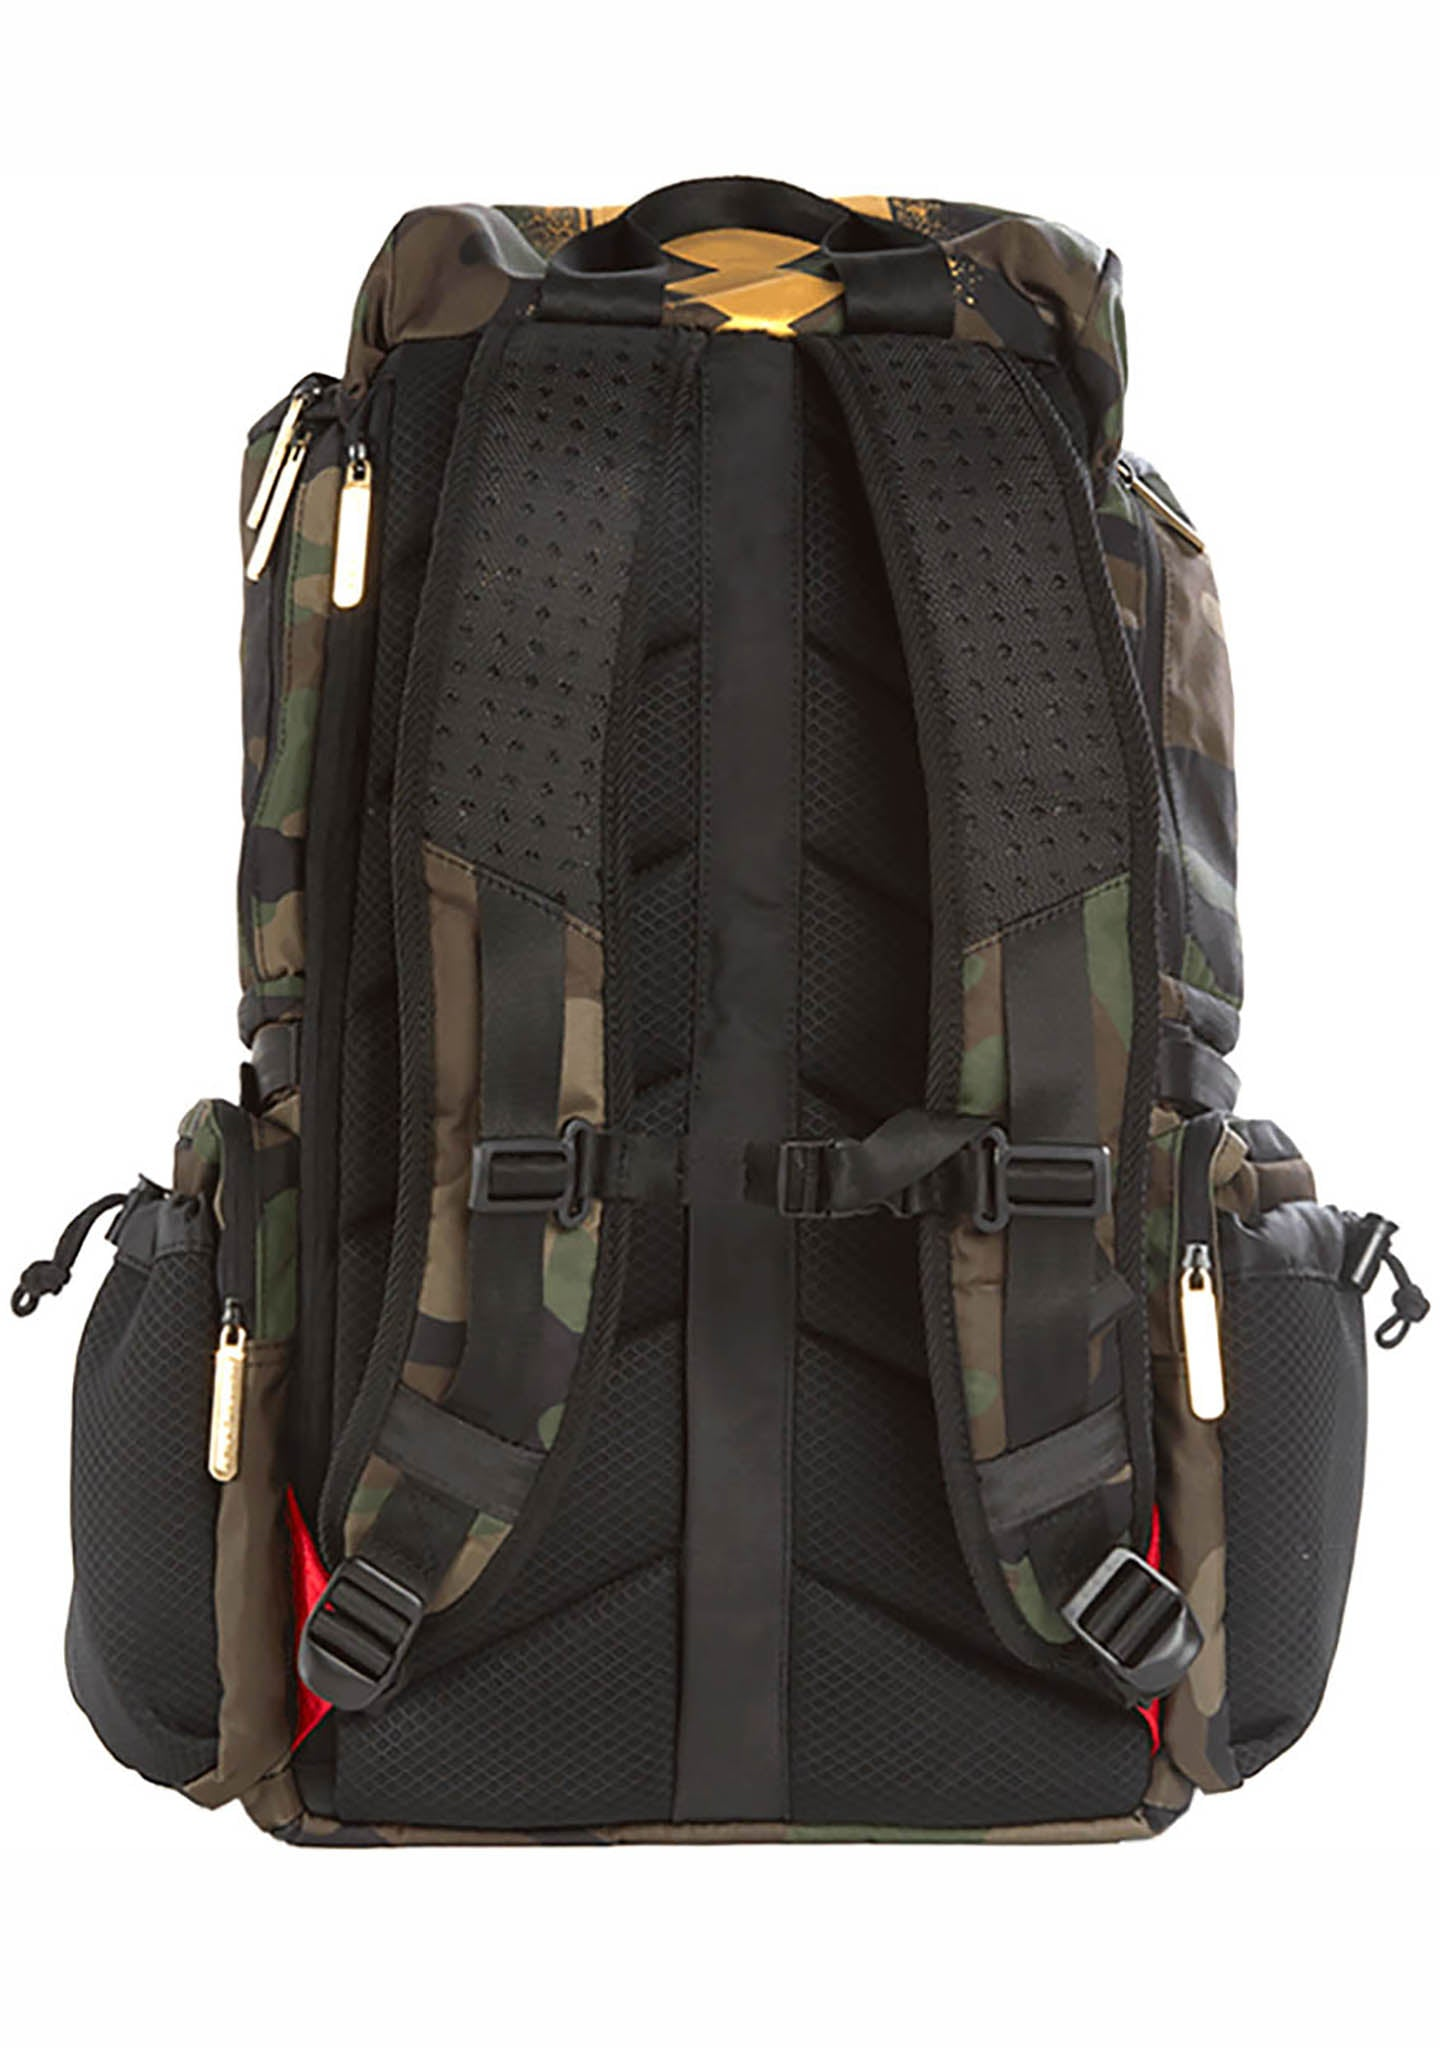 Sprayground Gold Stencil Camo Shark Top Gear Backpack